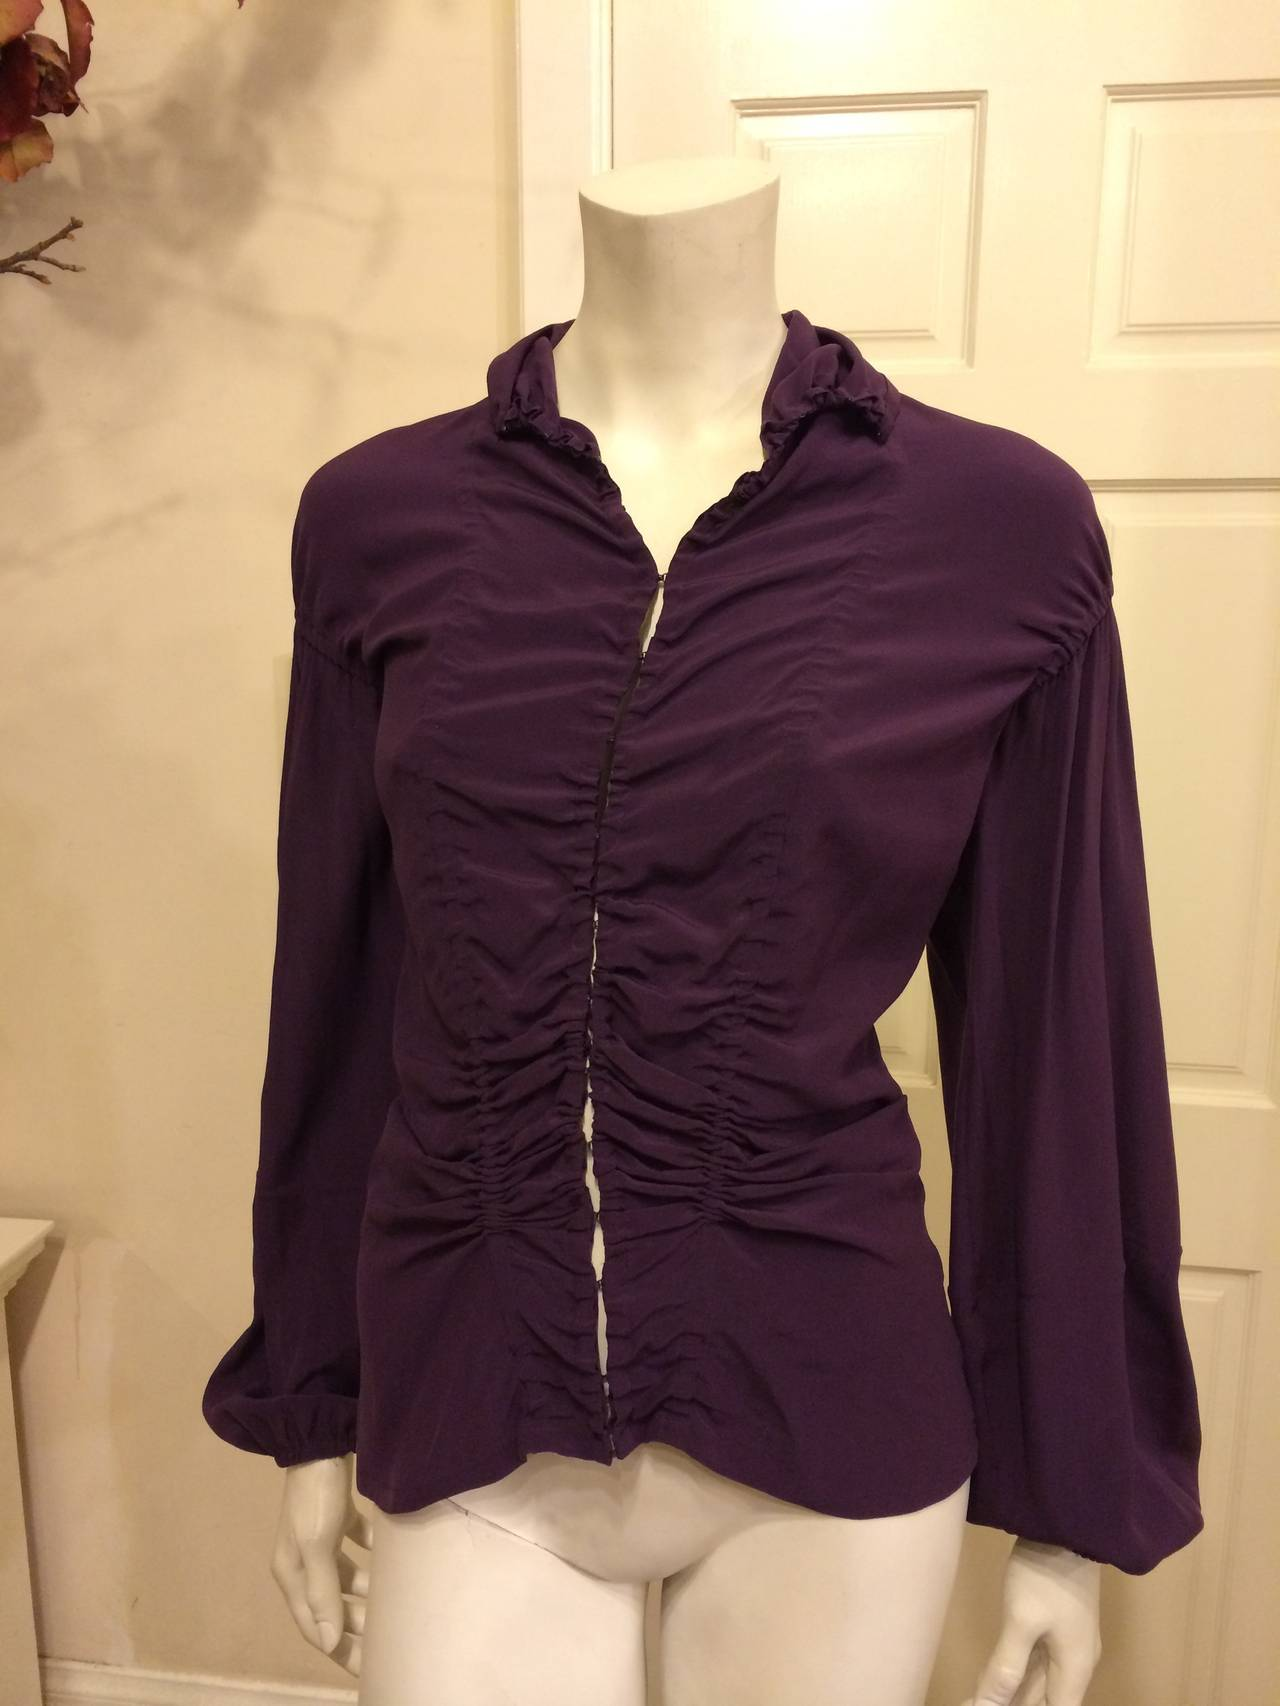 Deep and sumptuous royal purple makes this piece especially beautiful. The loose bell-shaped sleeves are elasticized at the wrist, and the lines of drawstring ruching that run down the front and back add a lovely gathered texture. The front is fixed